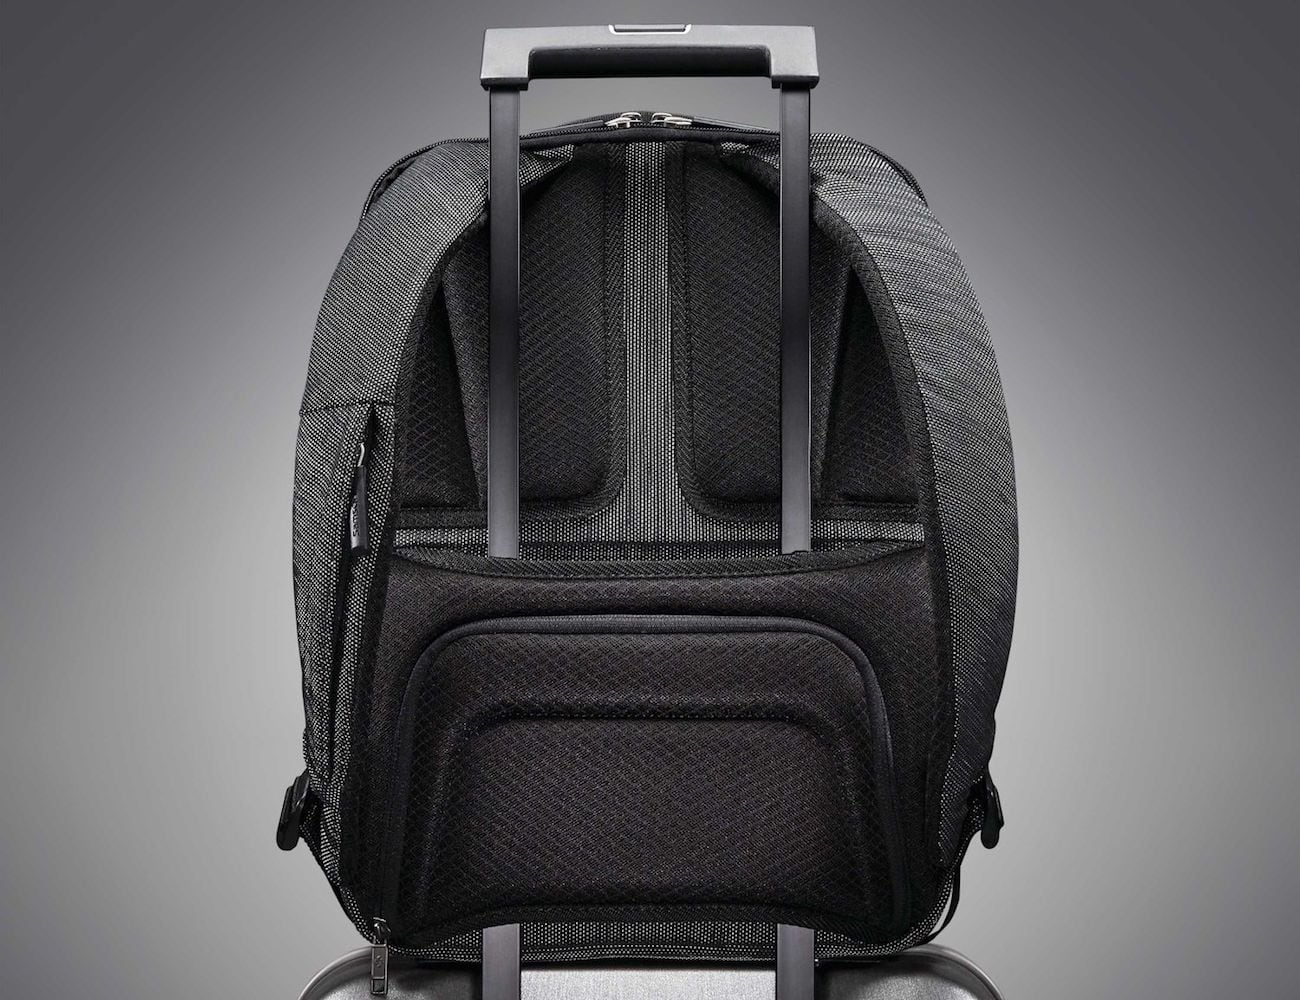 Samsonite SXK Prime Expandable Backpack